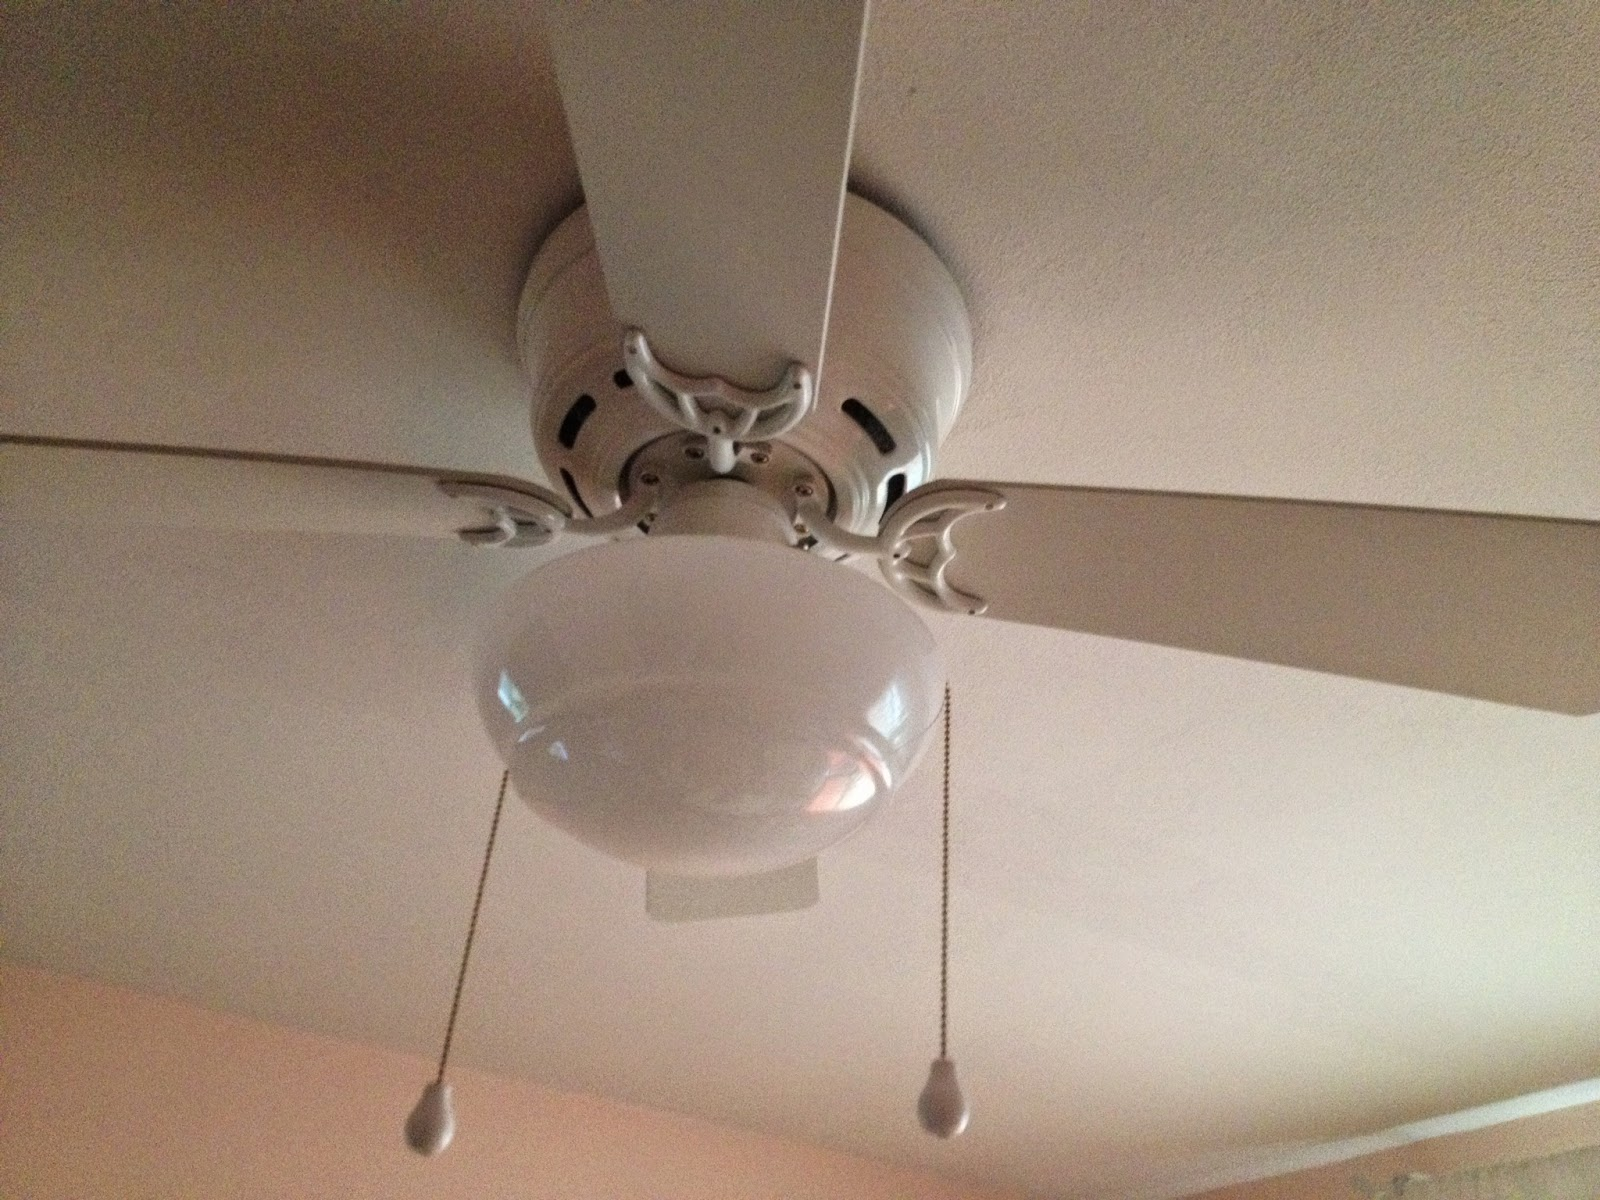 Mess of the day ikea hack ceiling fan chandelier tuesday september 23 2014 arubaitofo Choice Image